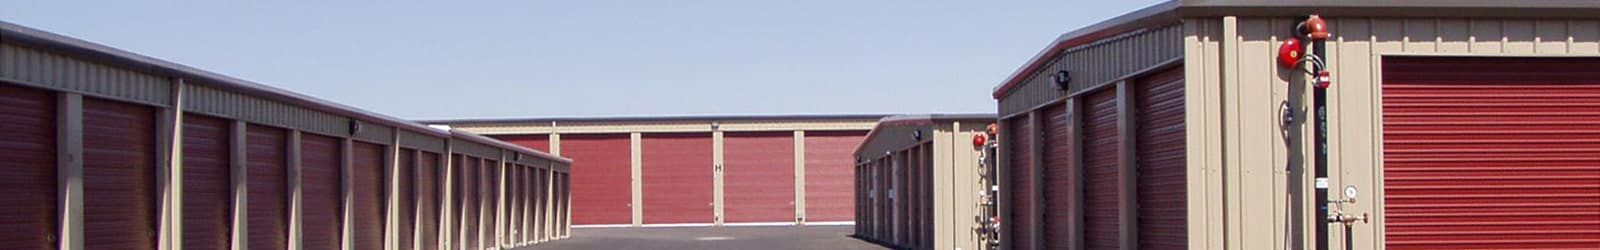 Find the perfect place to store your belongings at Gila Ridge Storage